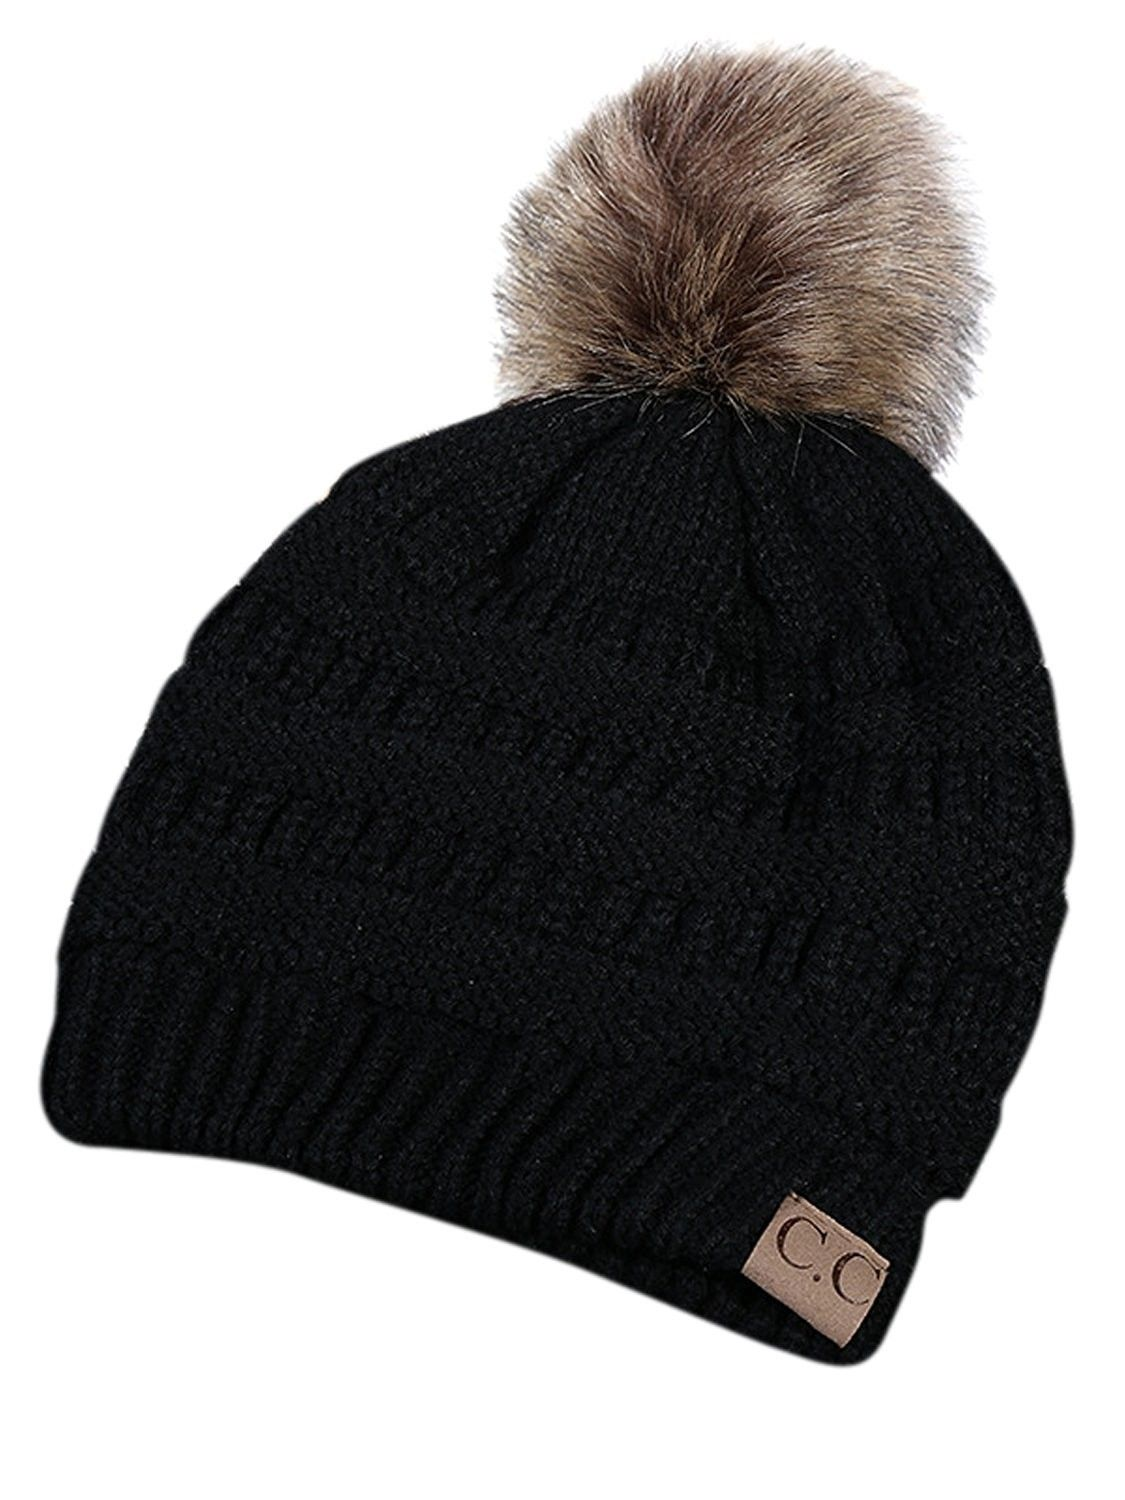 97f0ddcb44d Winter Warm Unisex Chunky Cable Knit Beanie Hat Ski Cap - Pompom-black -  CZ18897TAOY - Hats   Caps